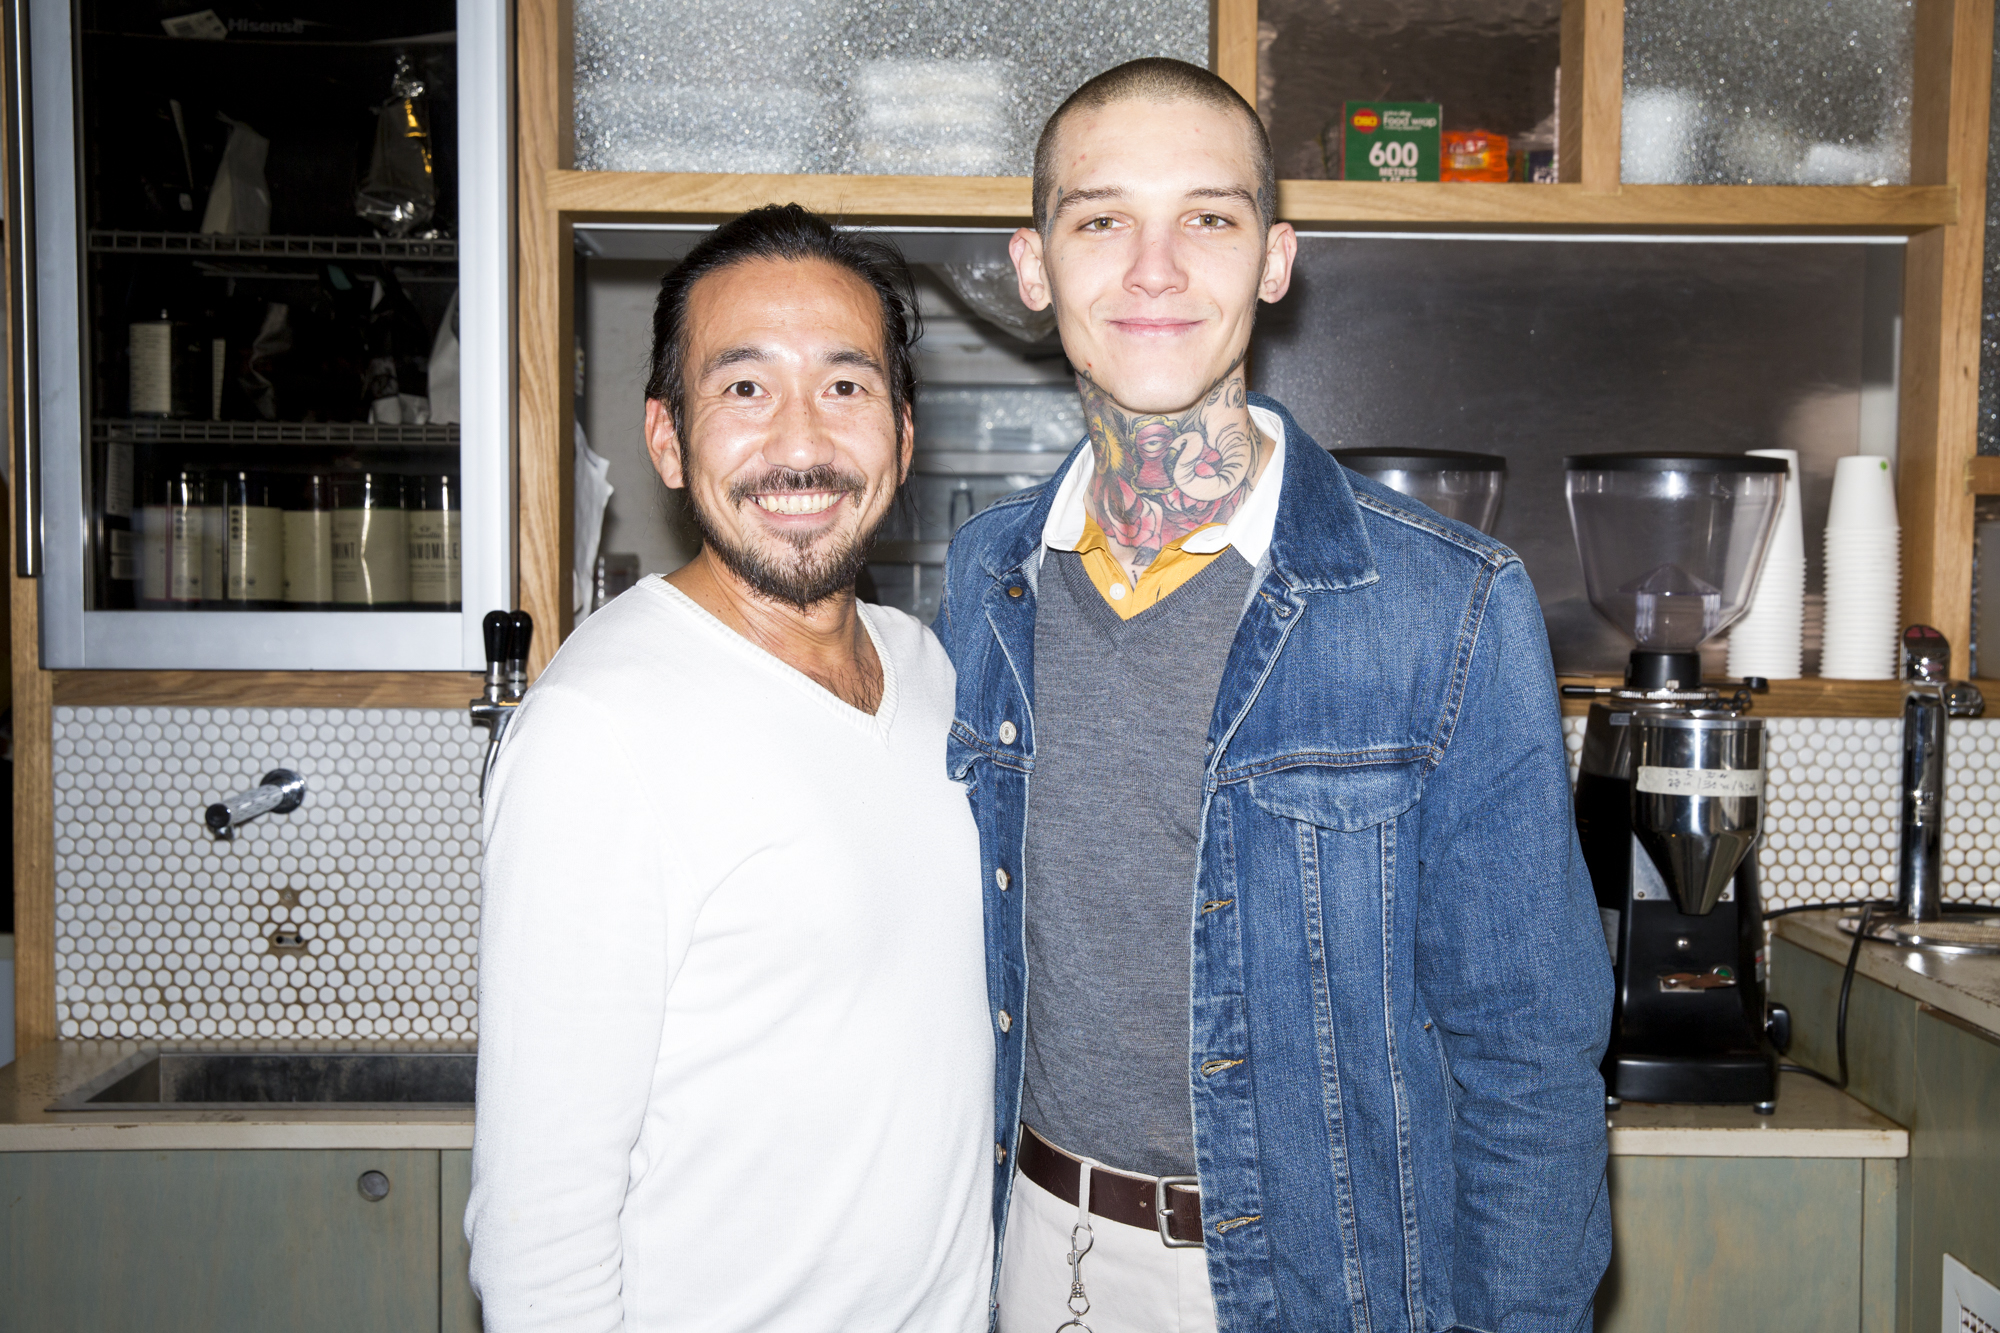 With the man behind the menu master chef ryo